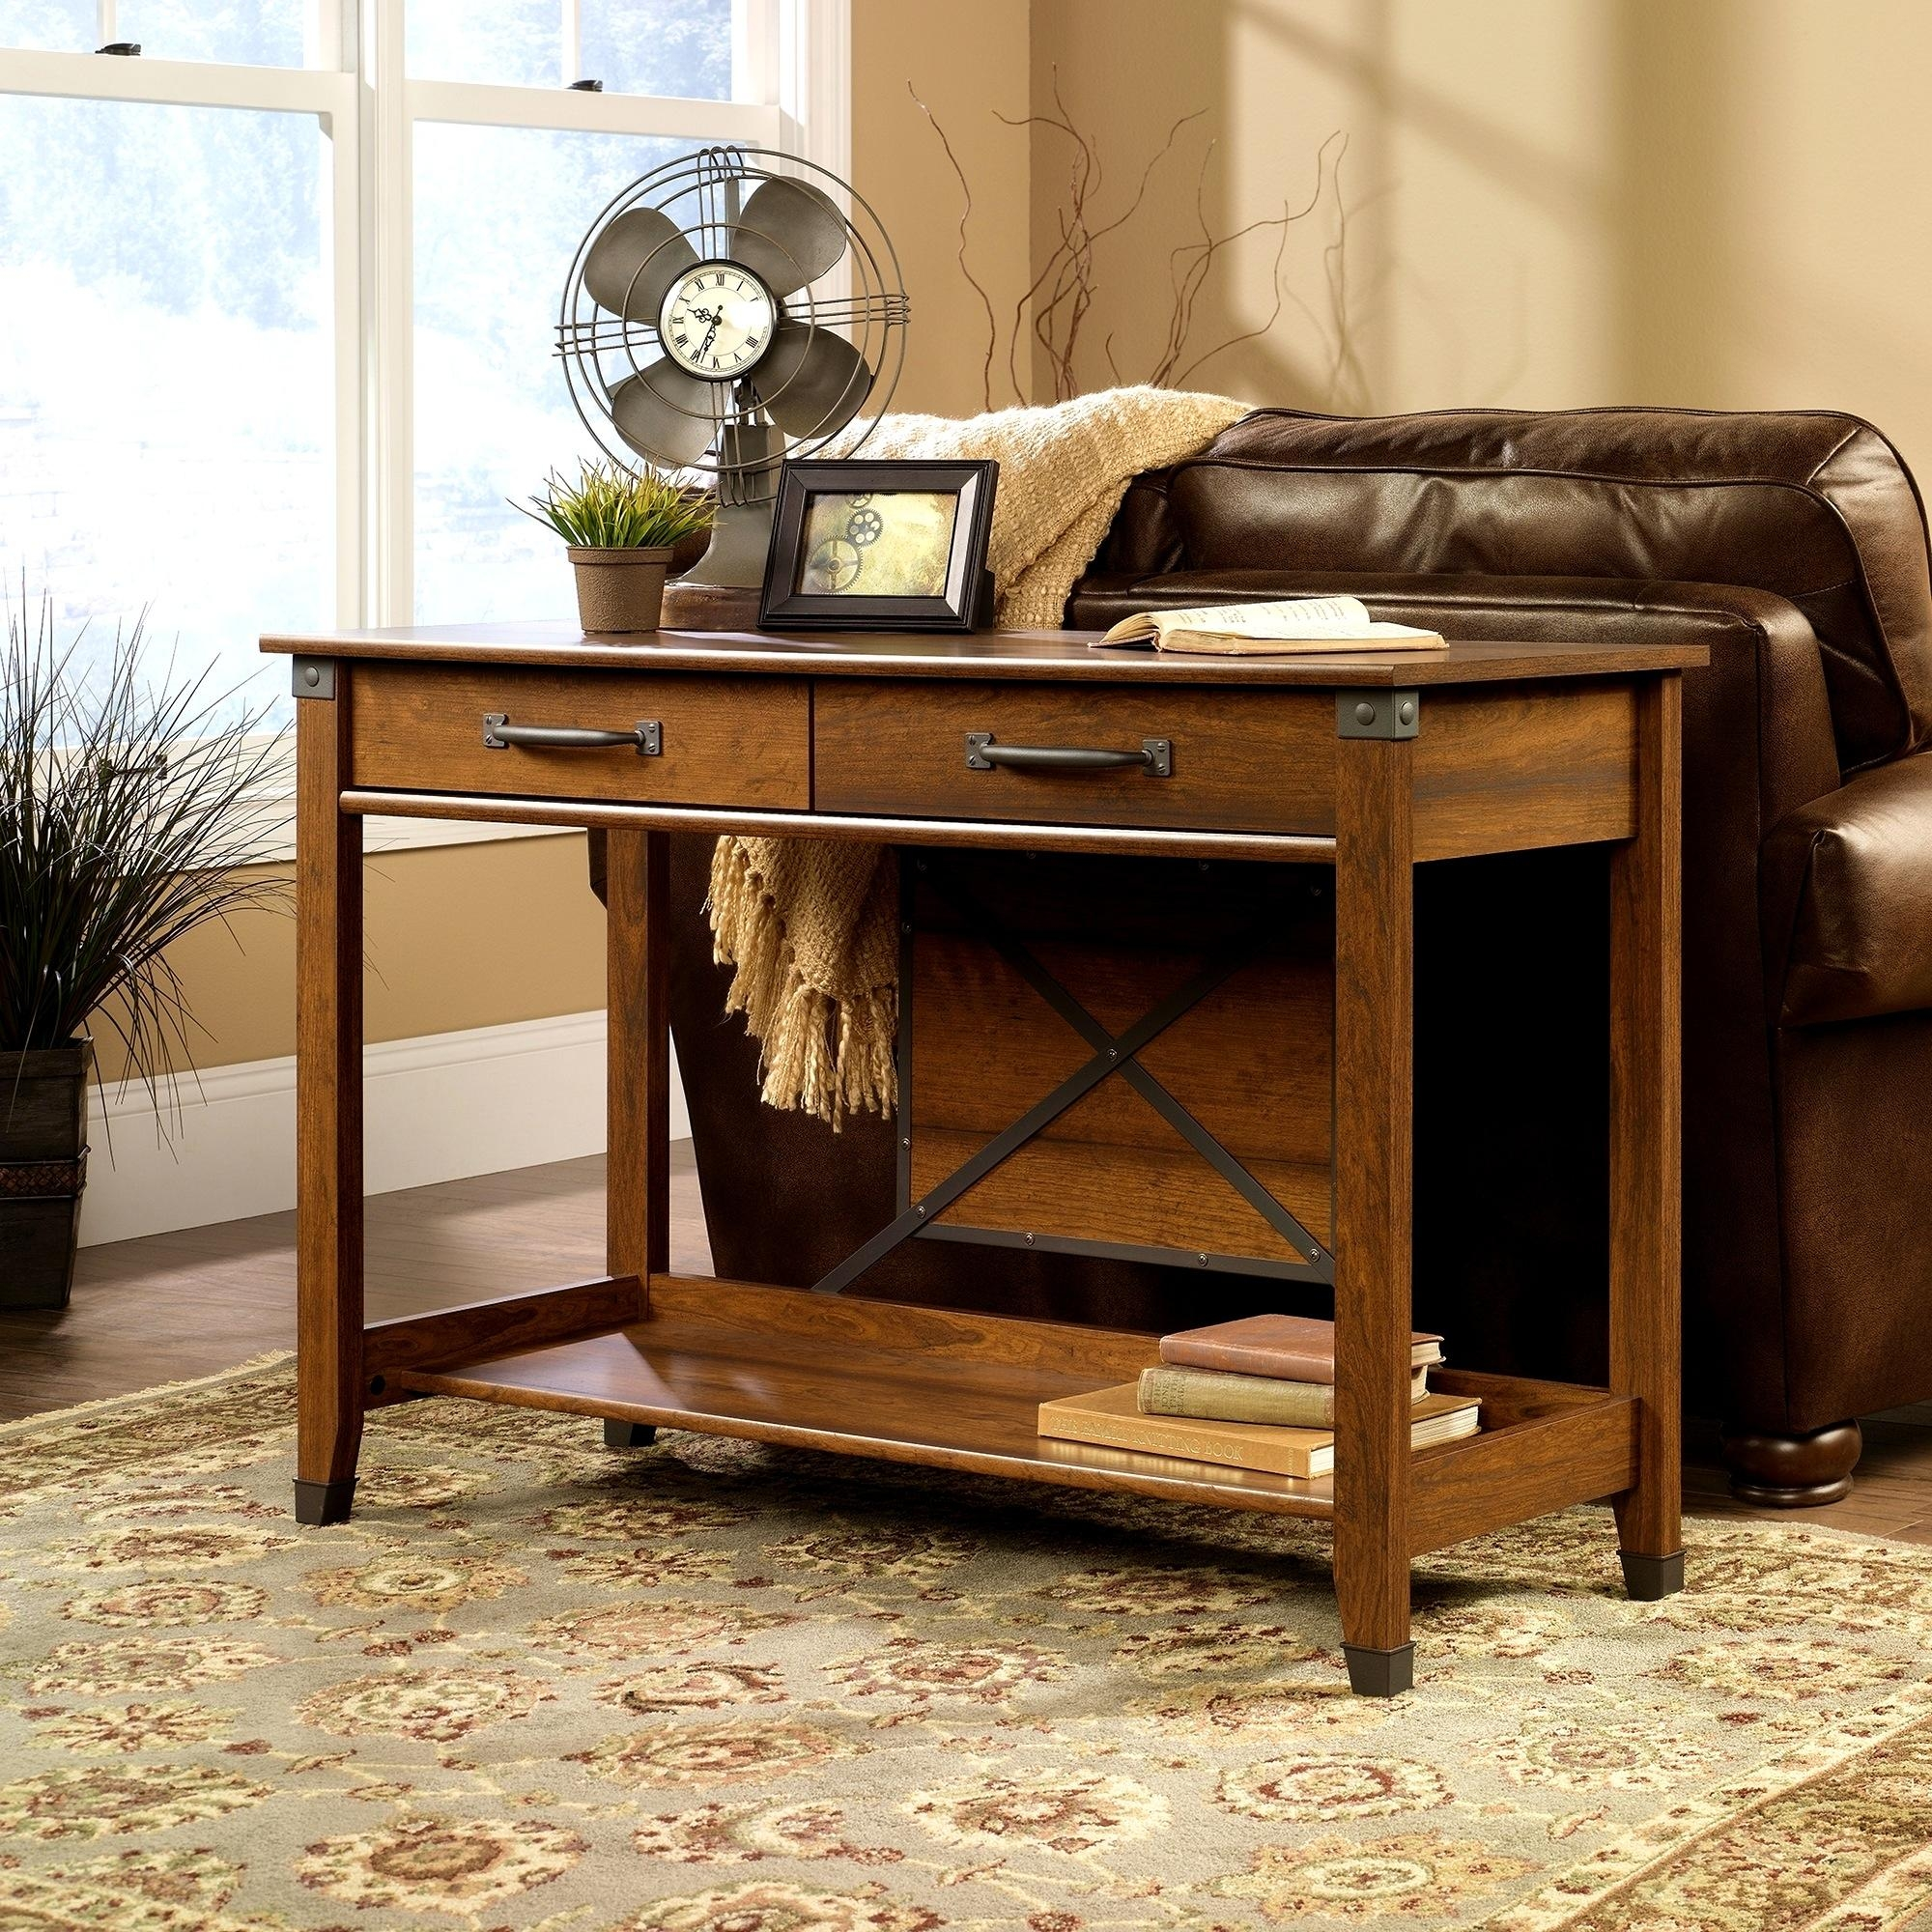 Sofa Table Design: New Collection Counter Height Sofa Table With Regard To Counter Height Sofa Tables (View 6 of 20)